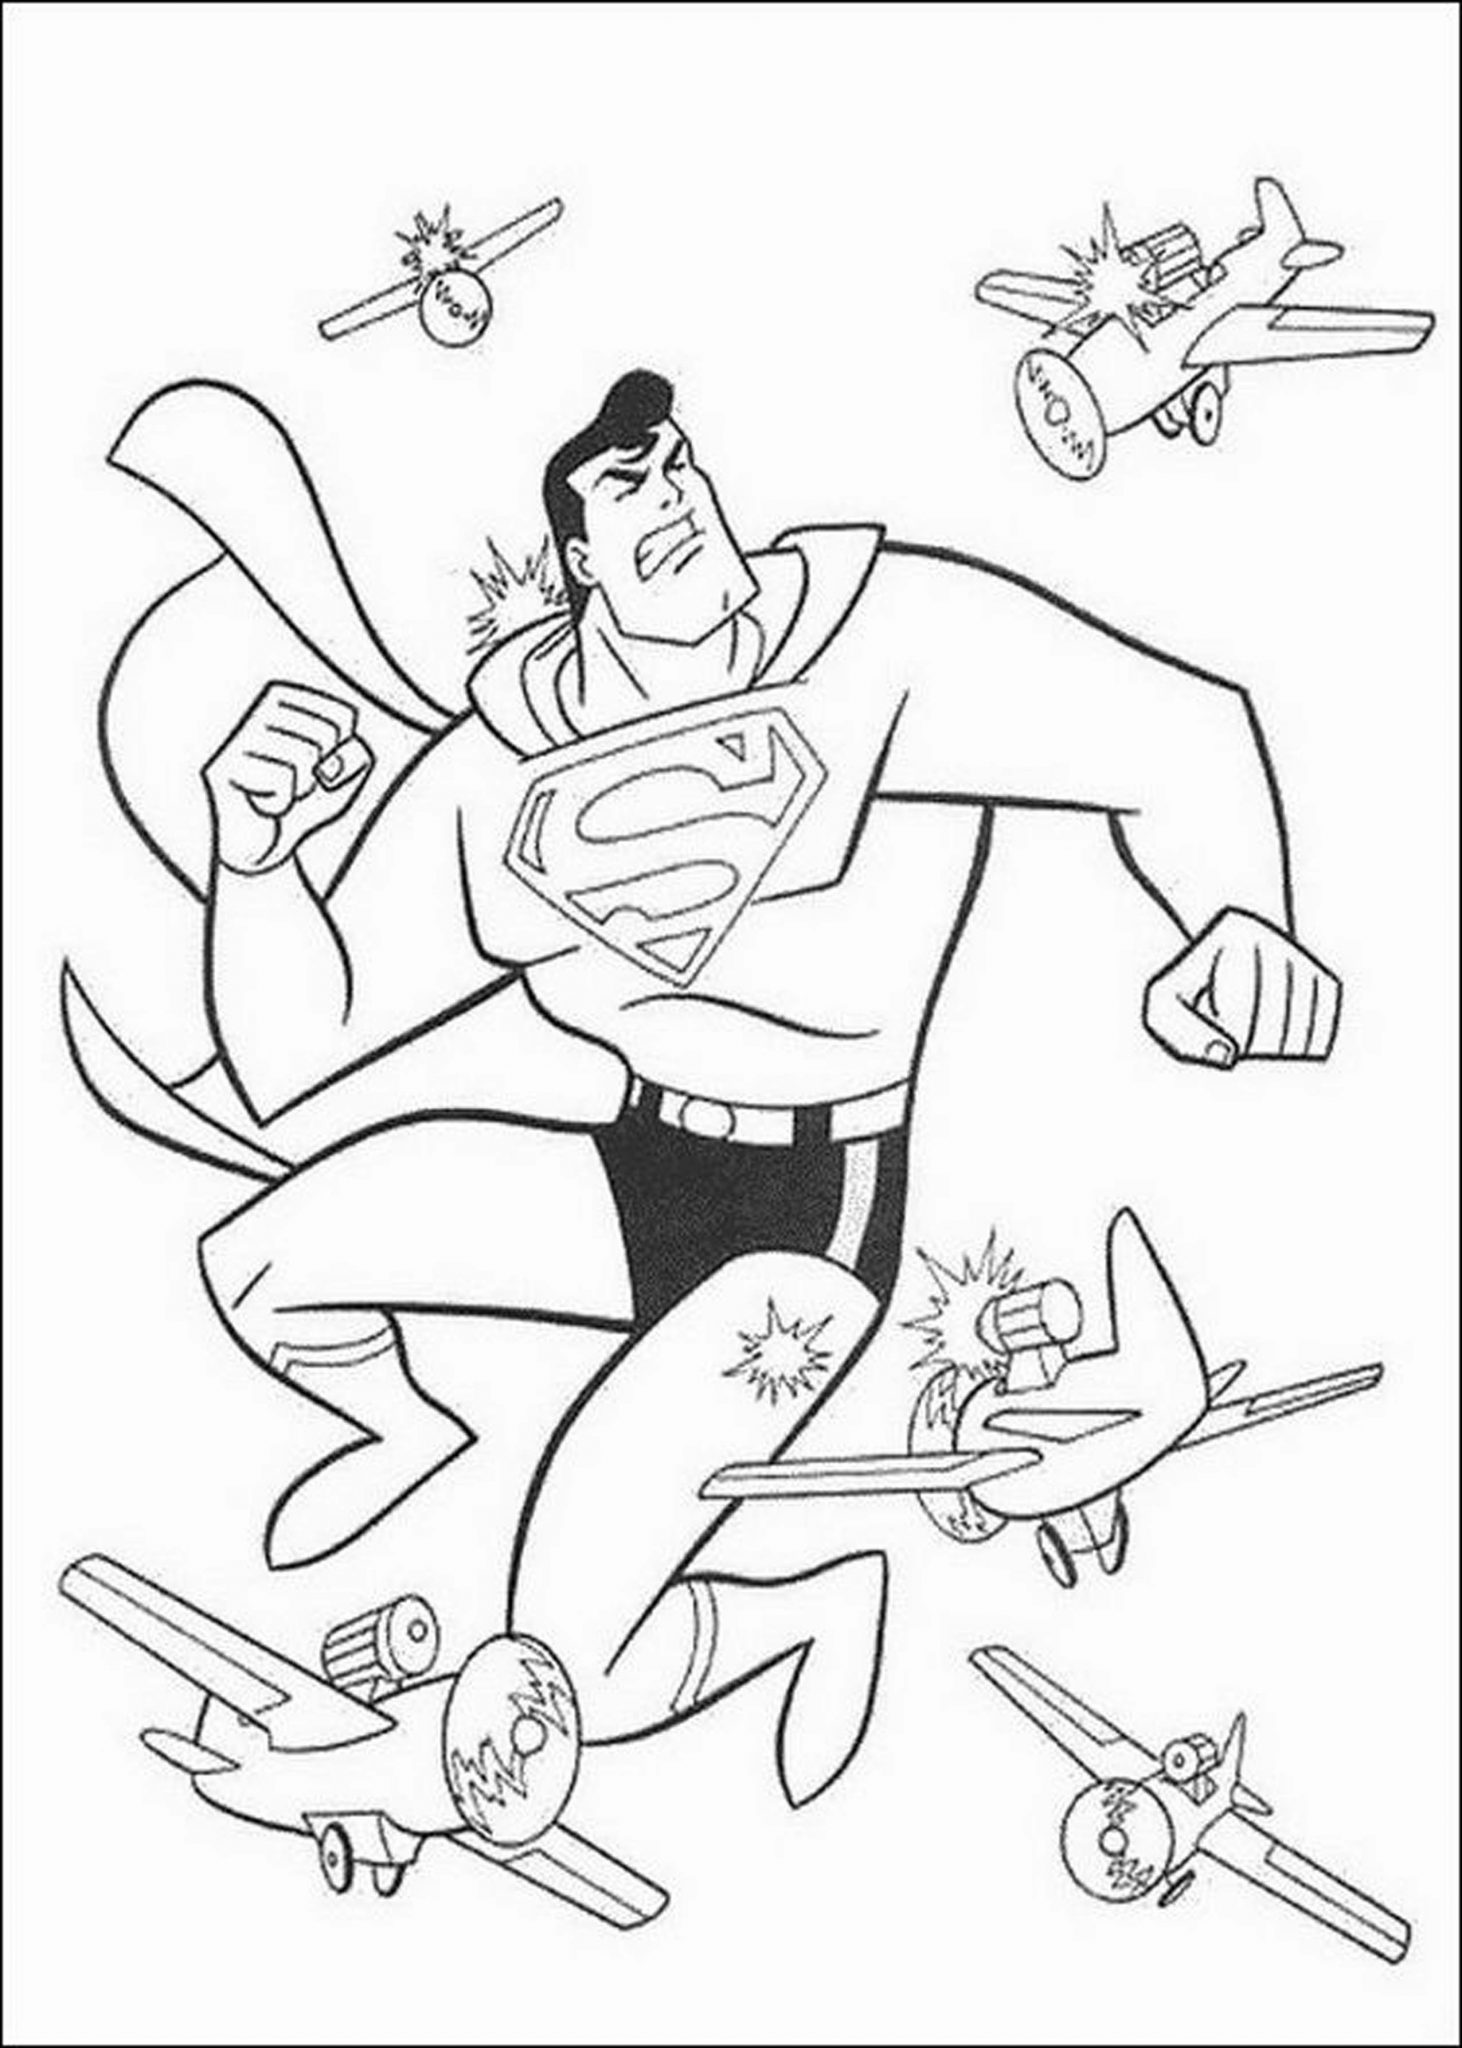 pictures to color for boys free printable boy coloring pages for kids boys pictures to color for